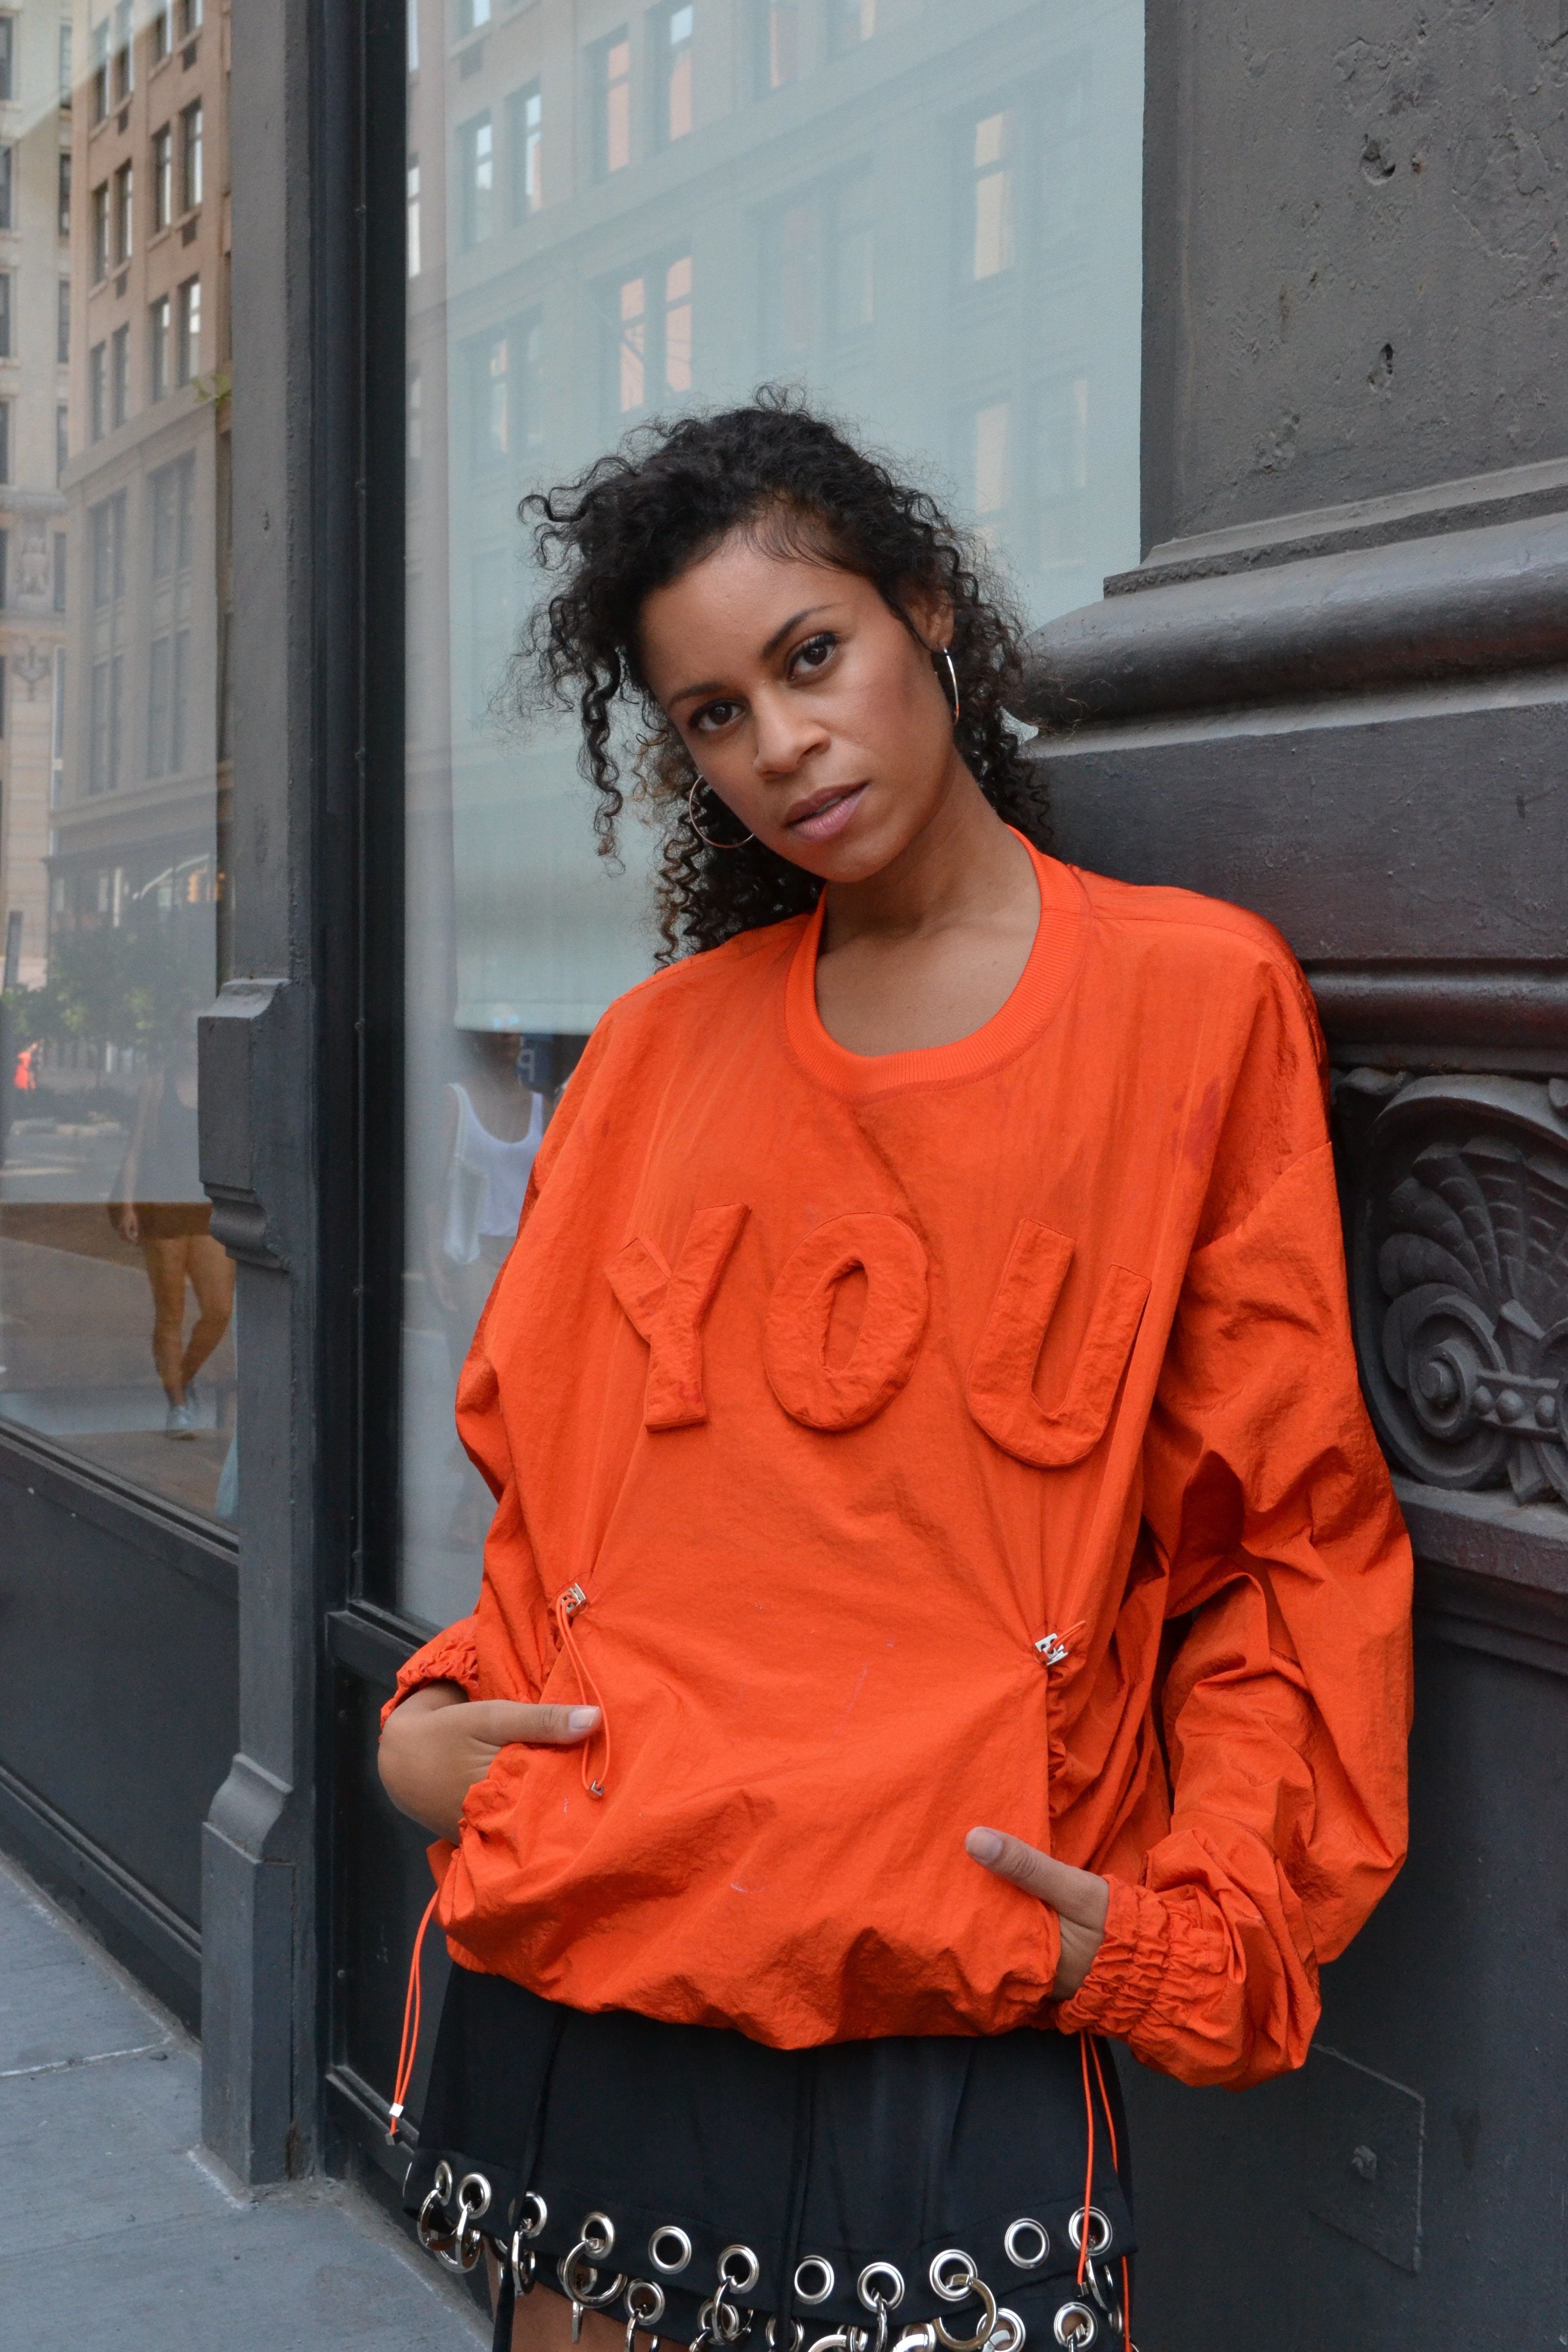 Aluna Francis rocks a bright orange windbreaker while posing along the streets of New York City